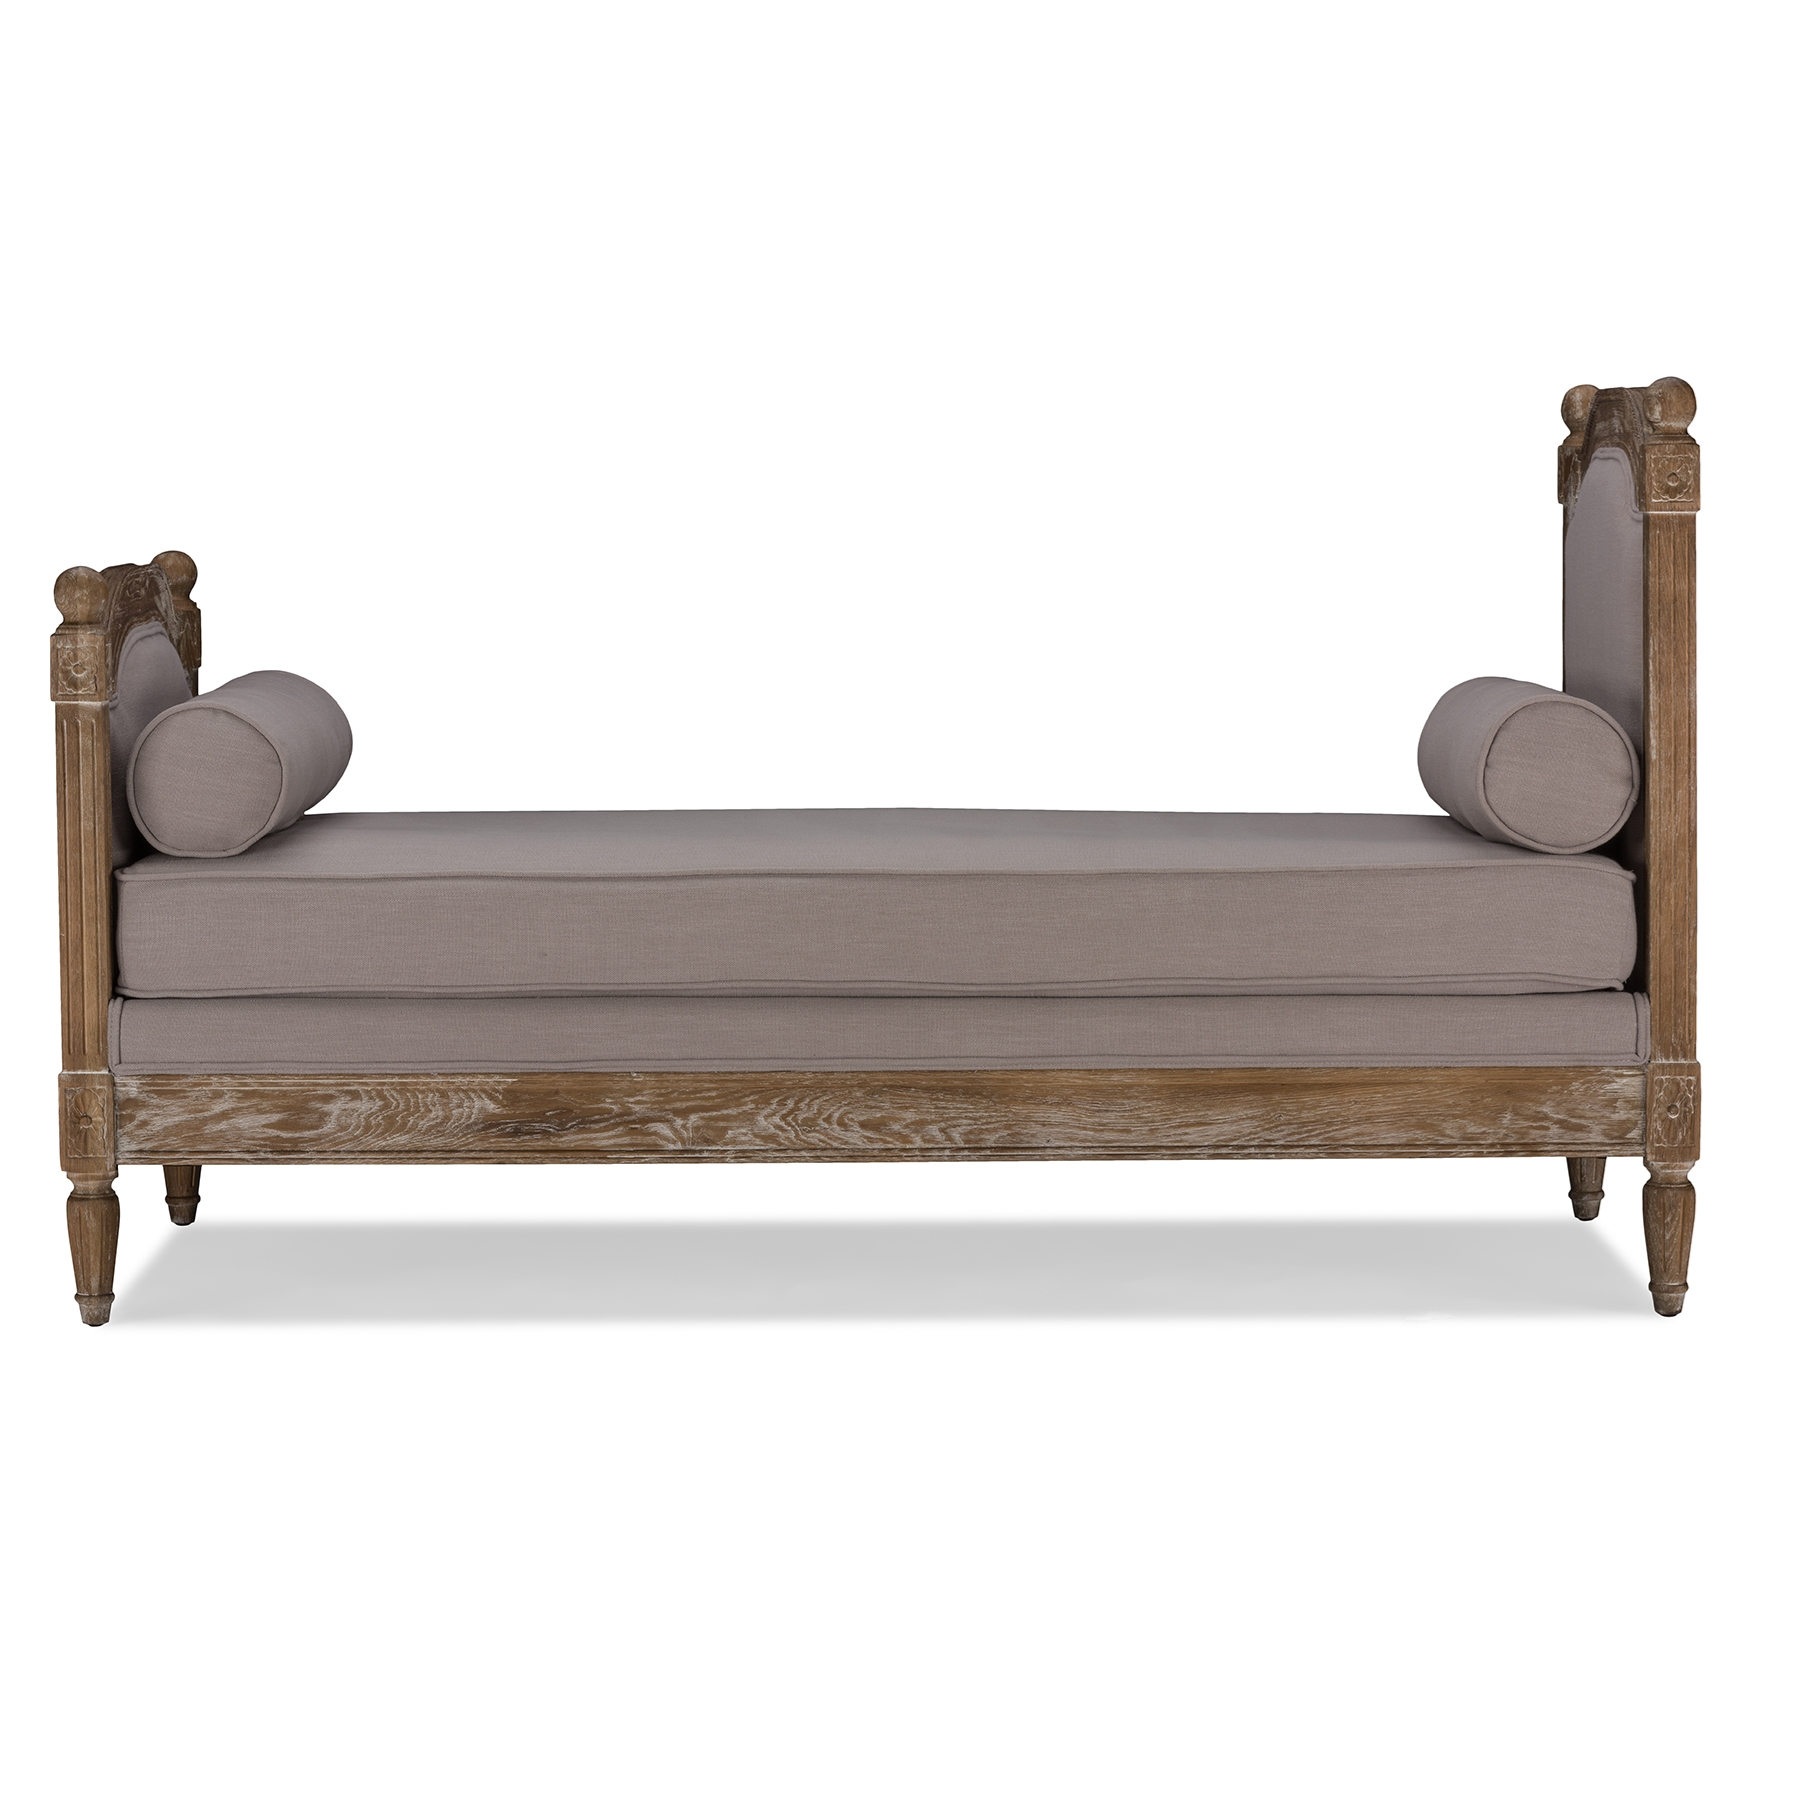 Baxton Studio Della Chic French Vintage Inspired Classic Oak Wood Beige  Linen Fabric Upholstered Daybed Settee